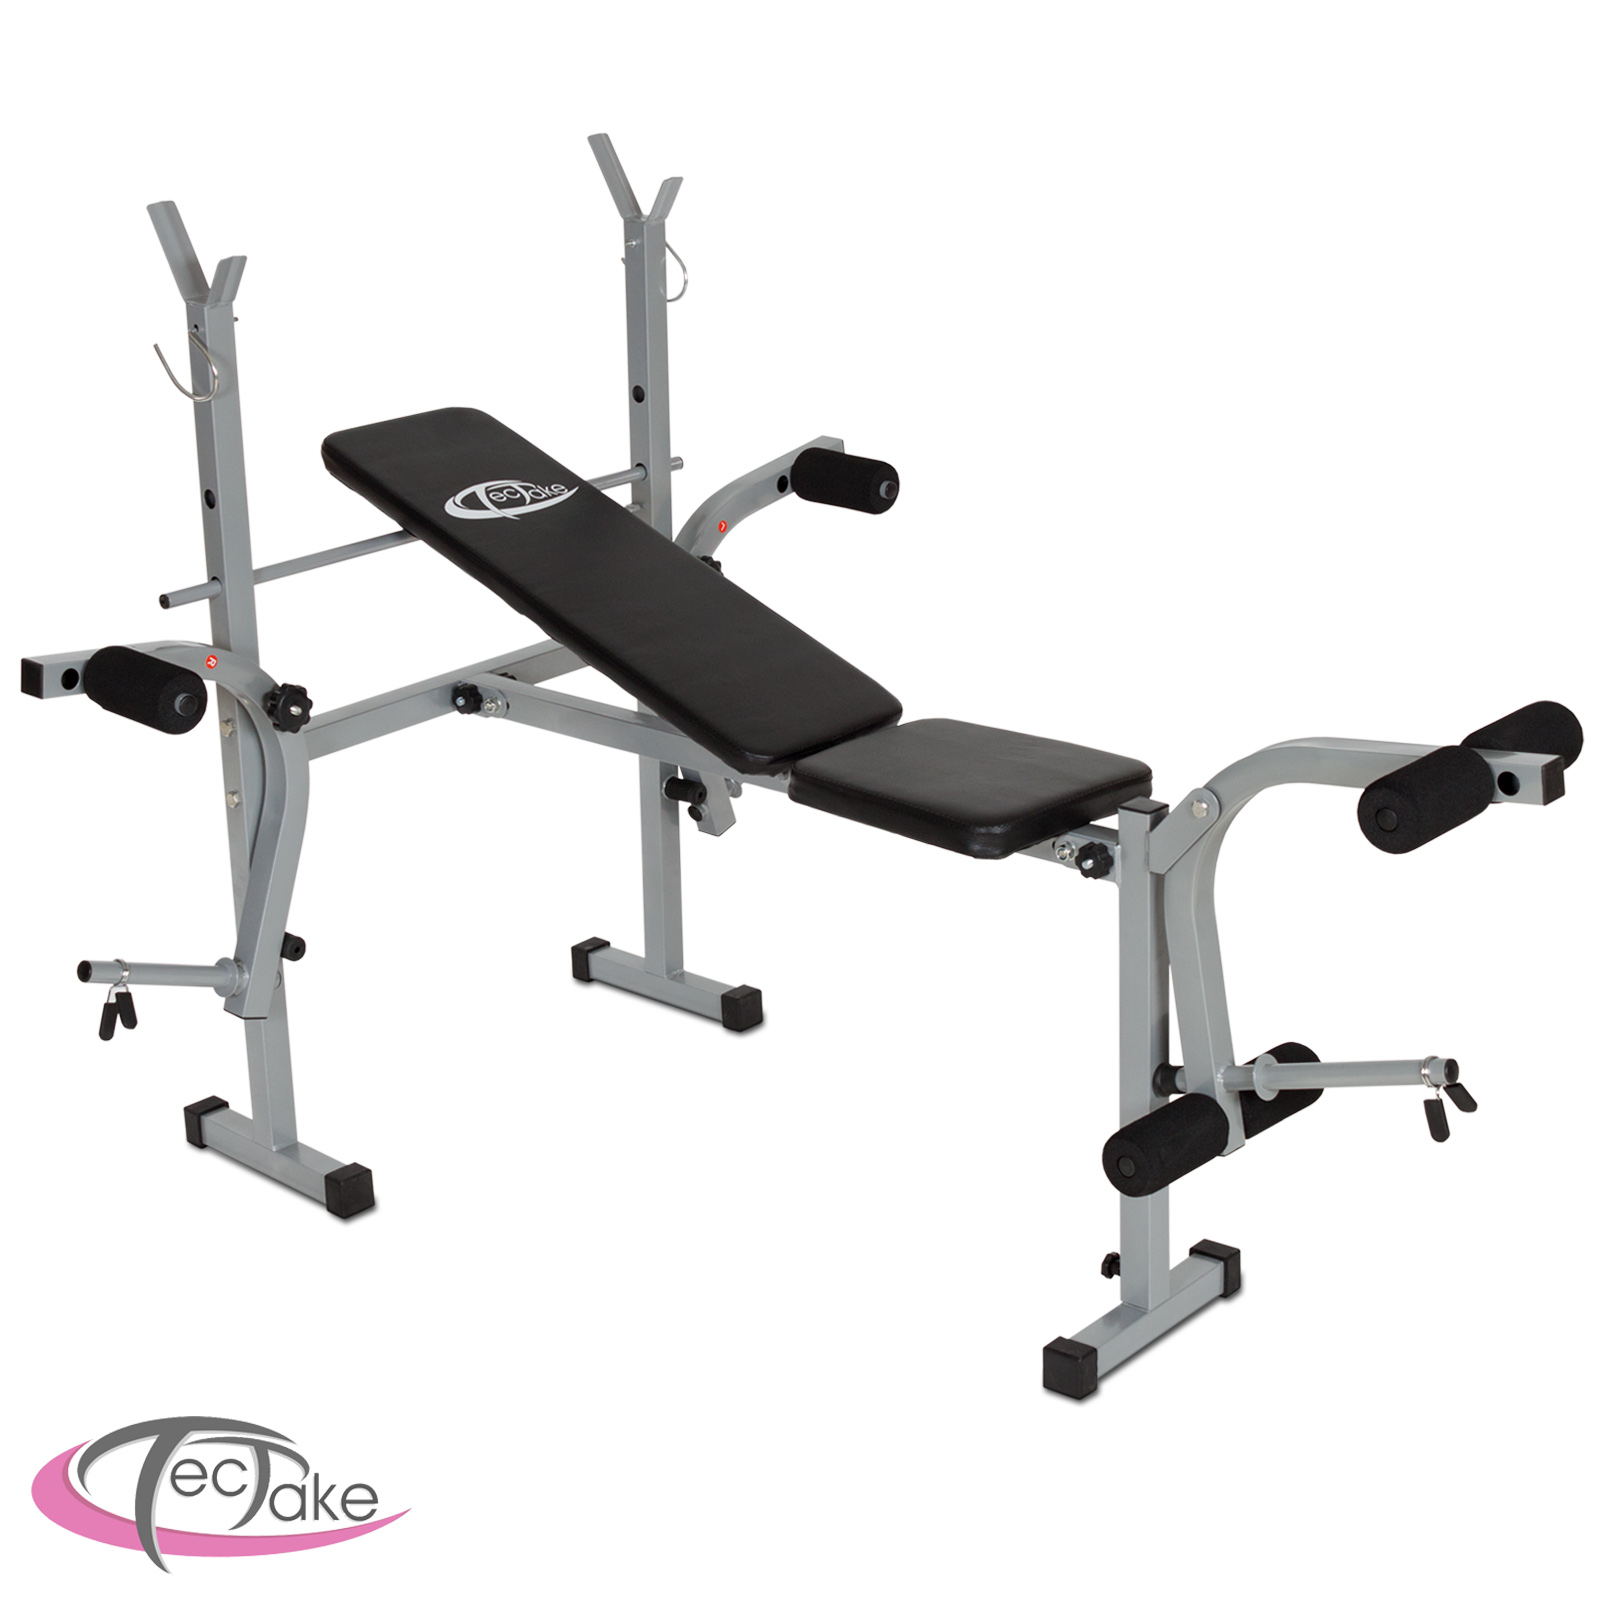 Folding Adjustable Workout Weight Bench With Leg Unit And Fly Attachment Ebay